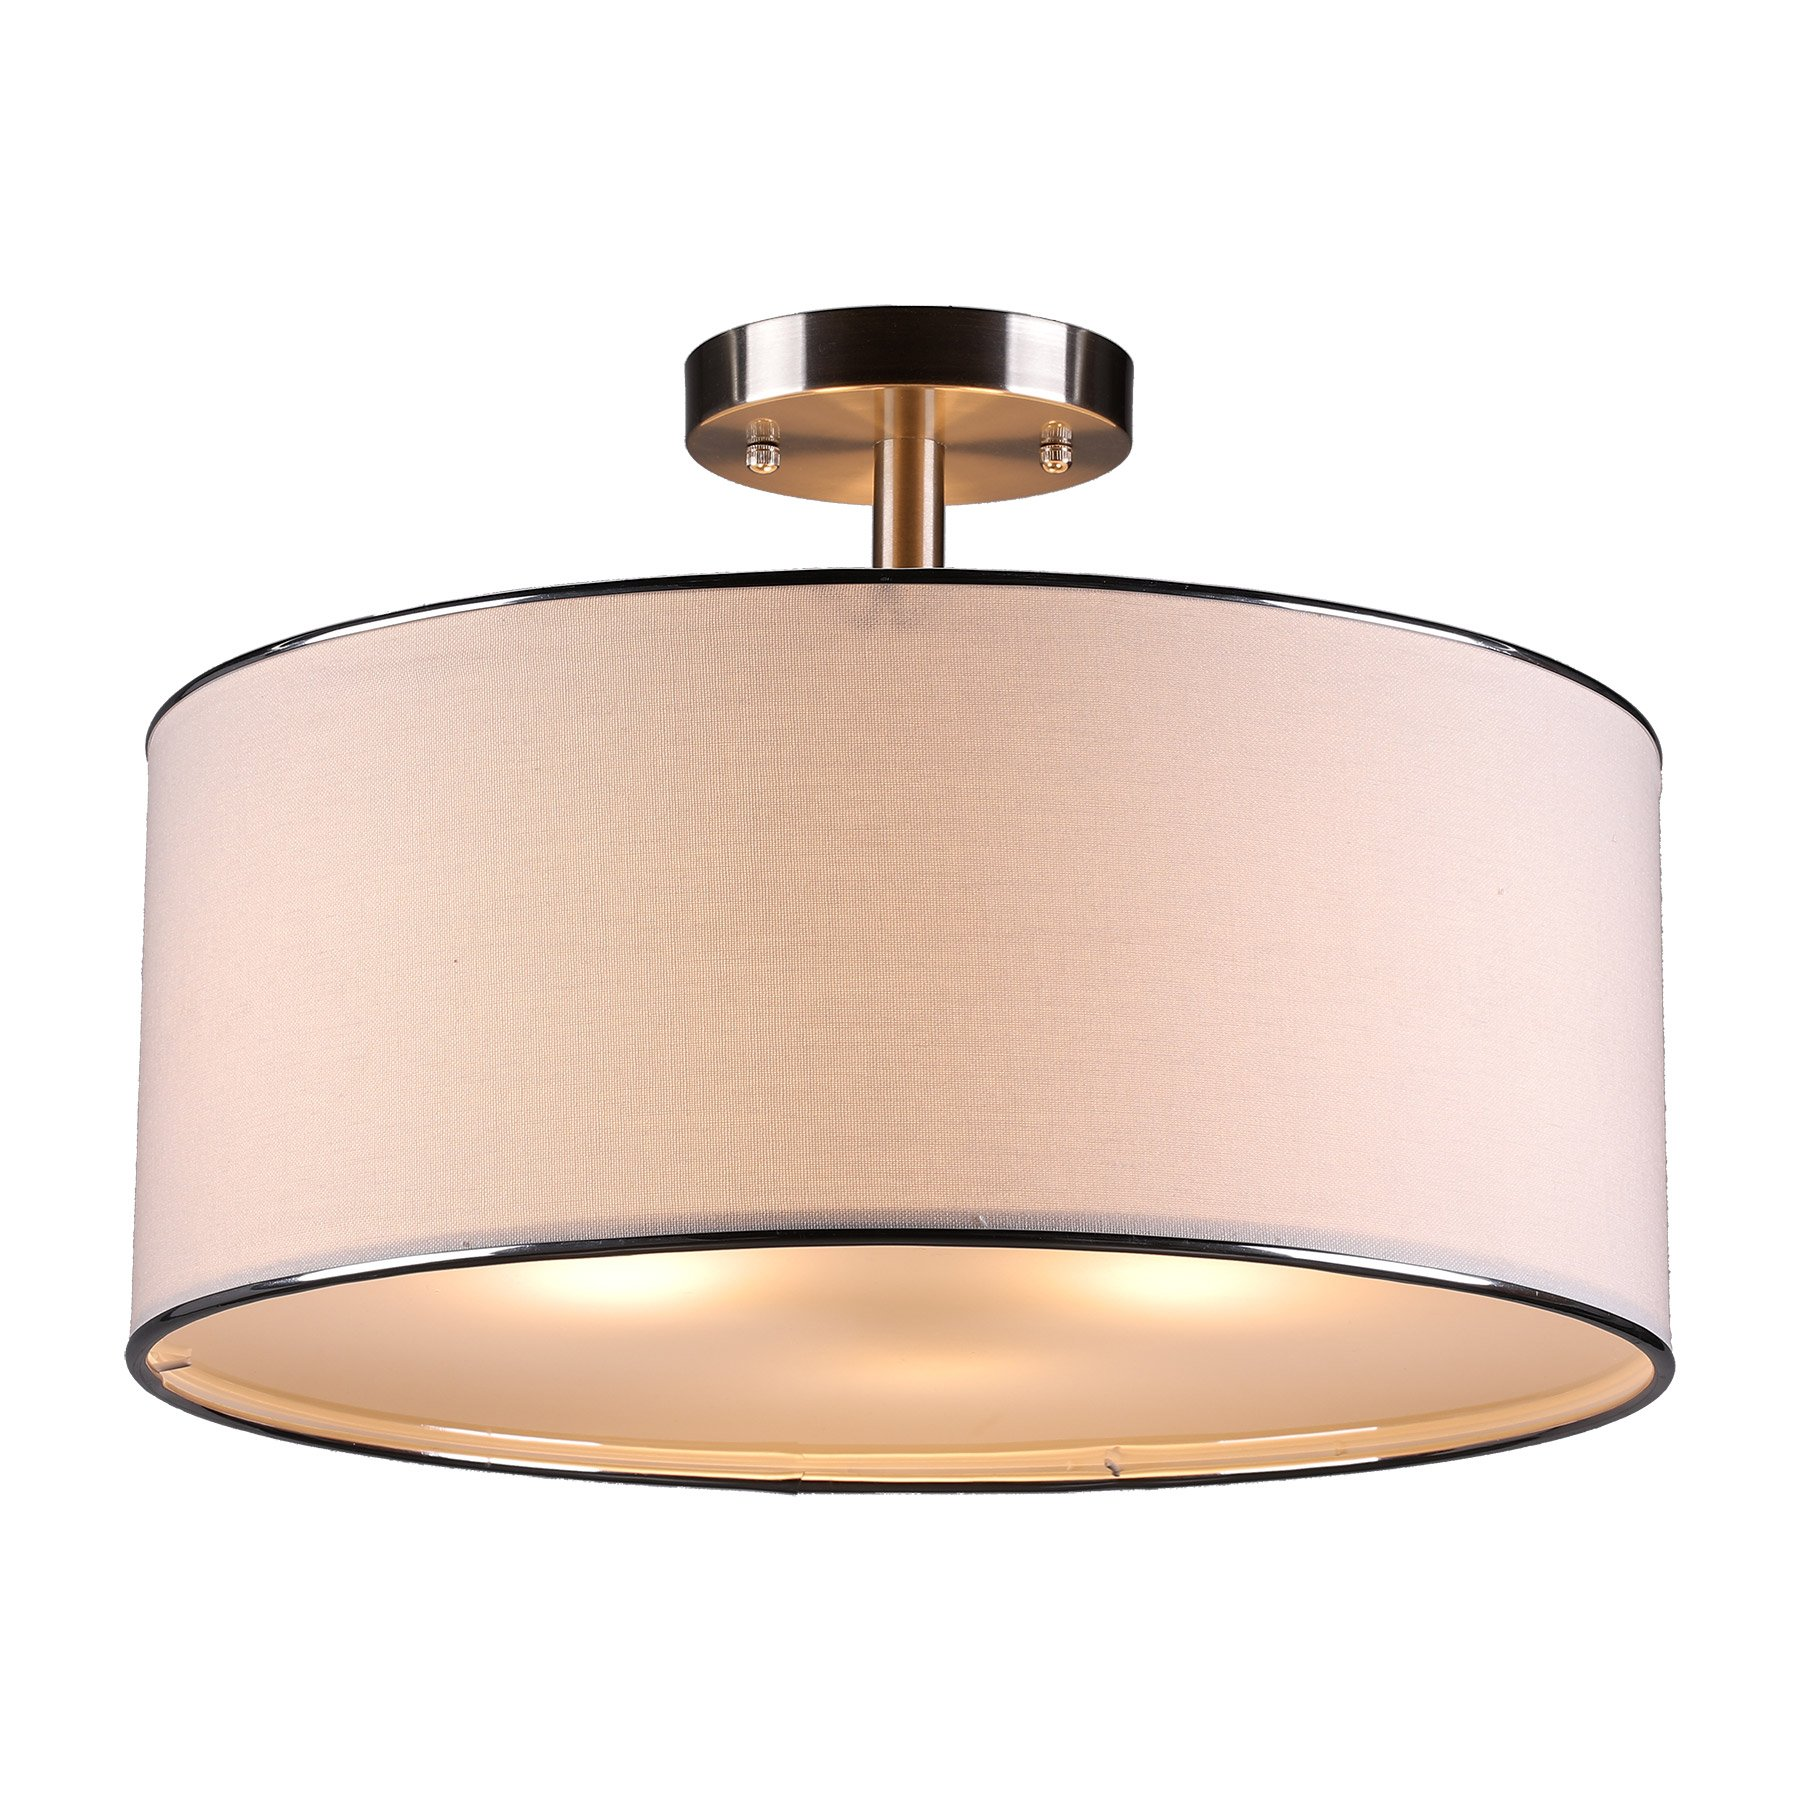 CO-Z Brushed Nickel 3-Light Drum Chandelier, Semi Flush Mount Contemporary Ceiling Light Fixture with Diffuse Shade for Kitchen, Hallway, Dining Room